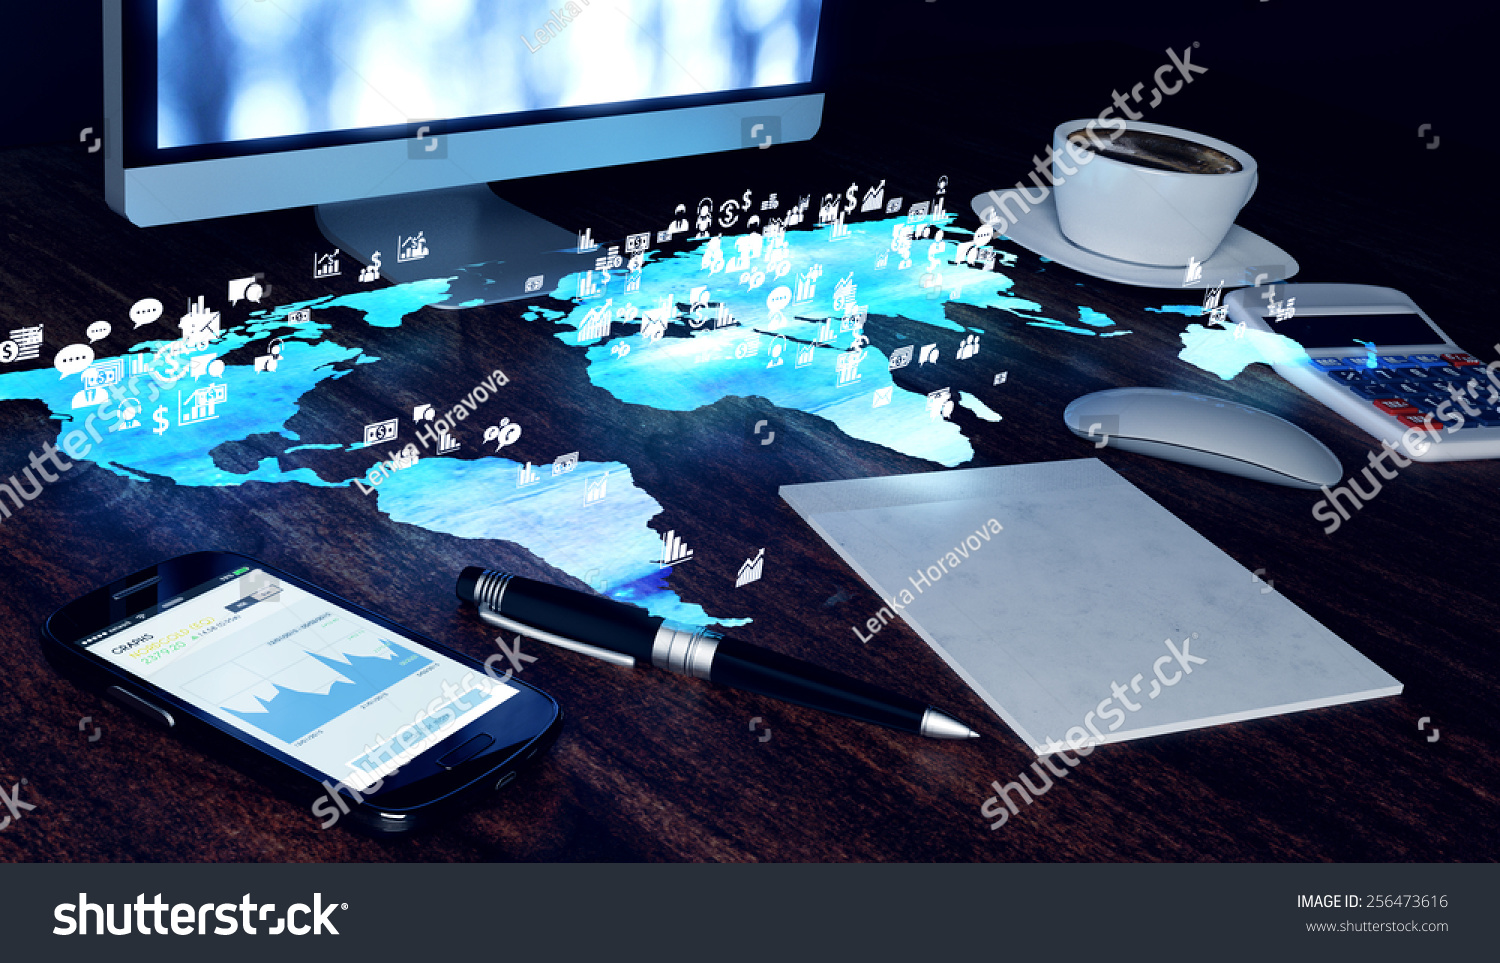 Future Office Concept Smartphone Notepad Pen Stock Illustration Circuitry Of An Electronic Calculator Royalty Free Photography Coffee Cup Computer